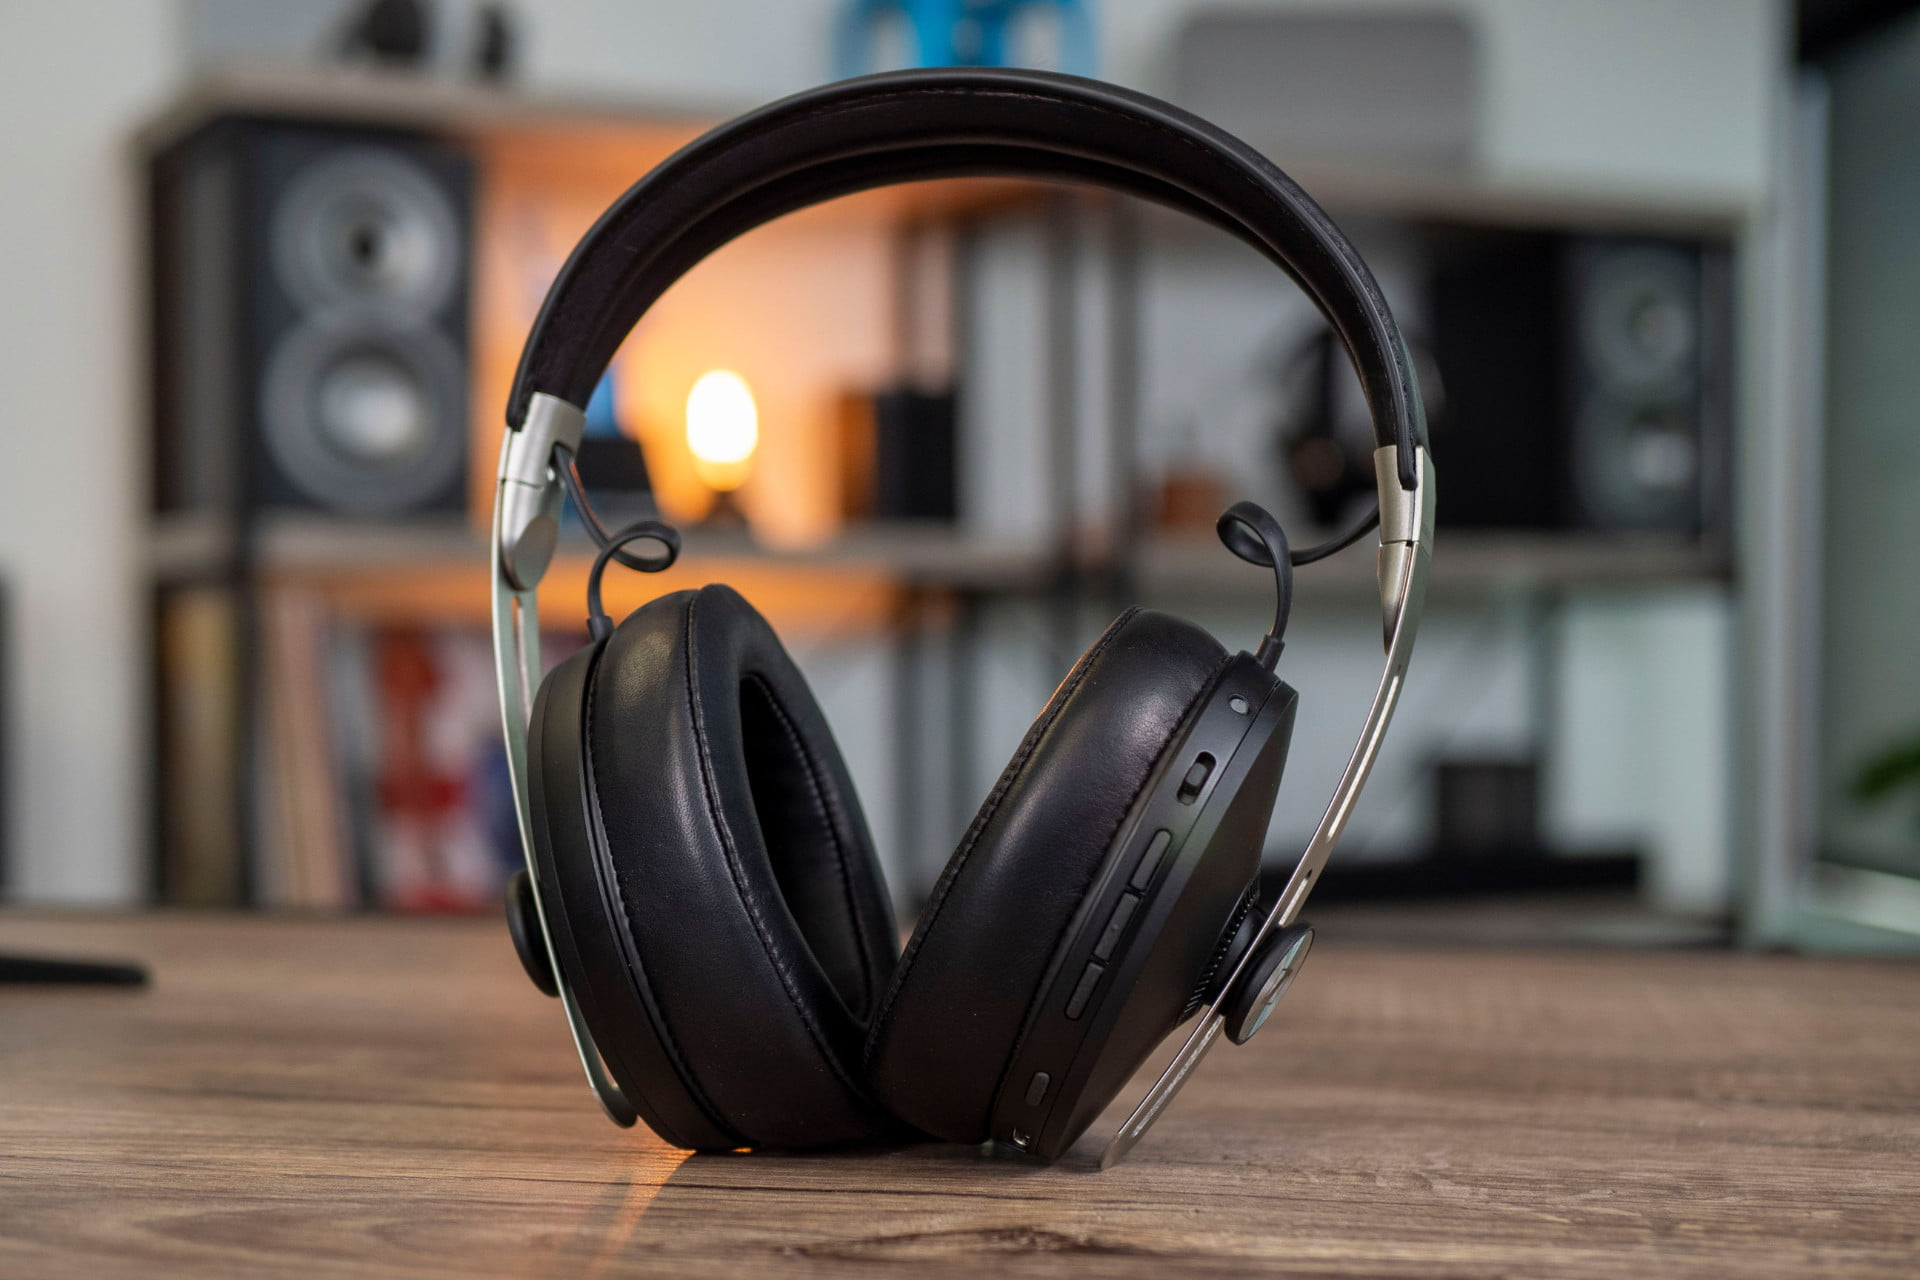 Sennheiser Momentum Wireless 3 review: Your ears will love it